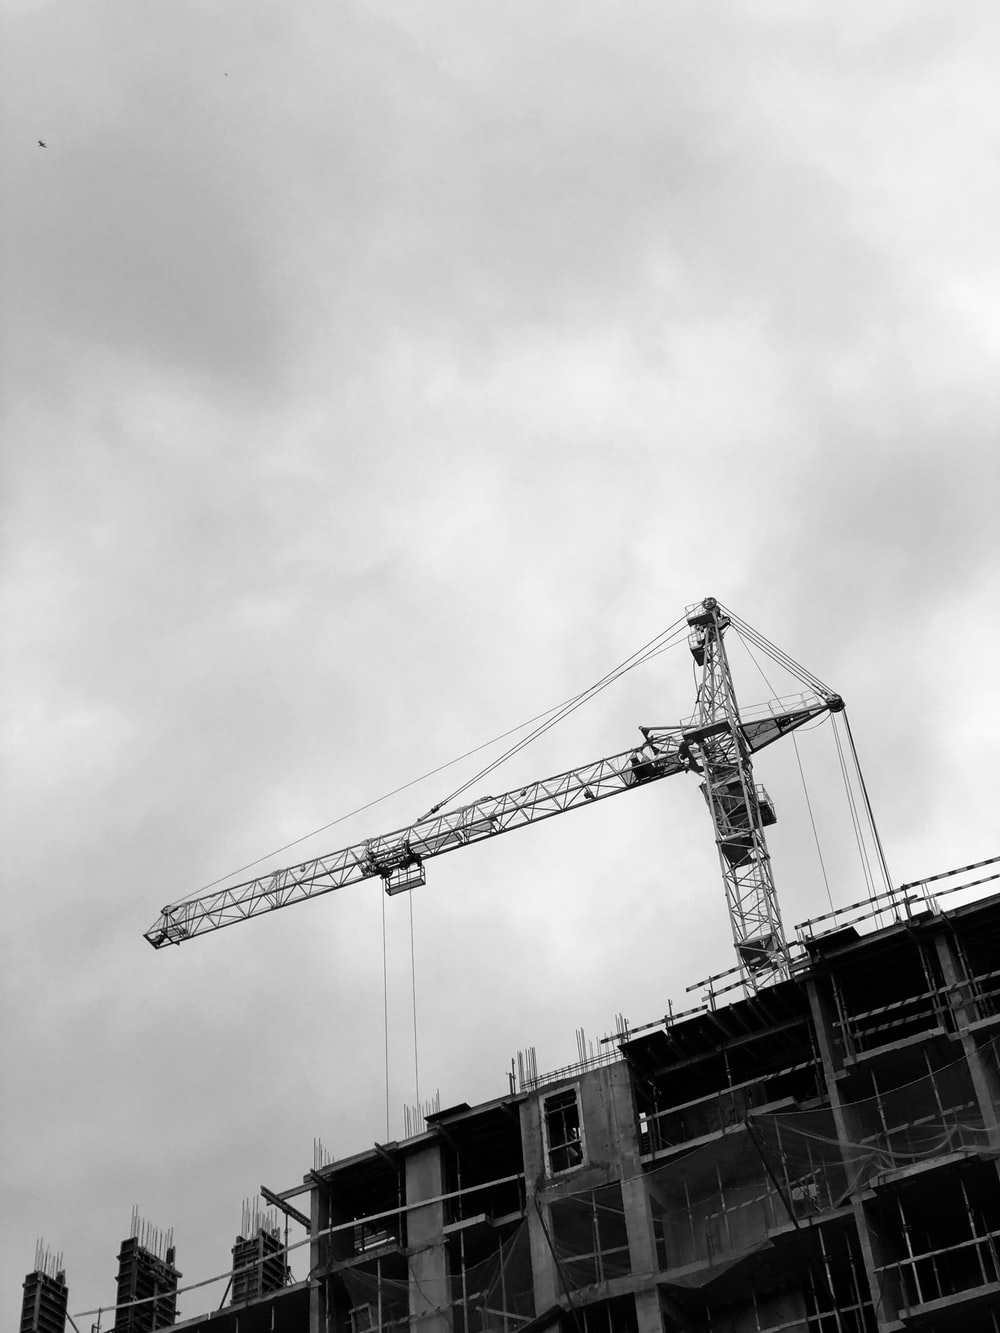 grayscale photo of crane under cloudy sky